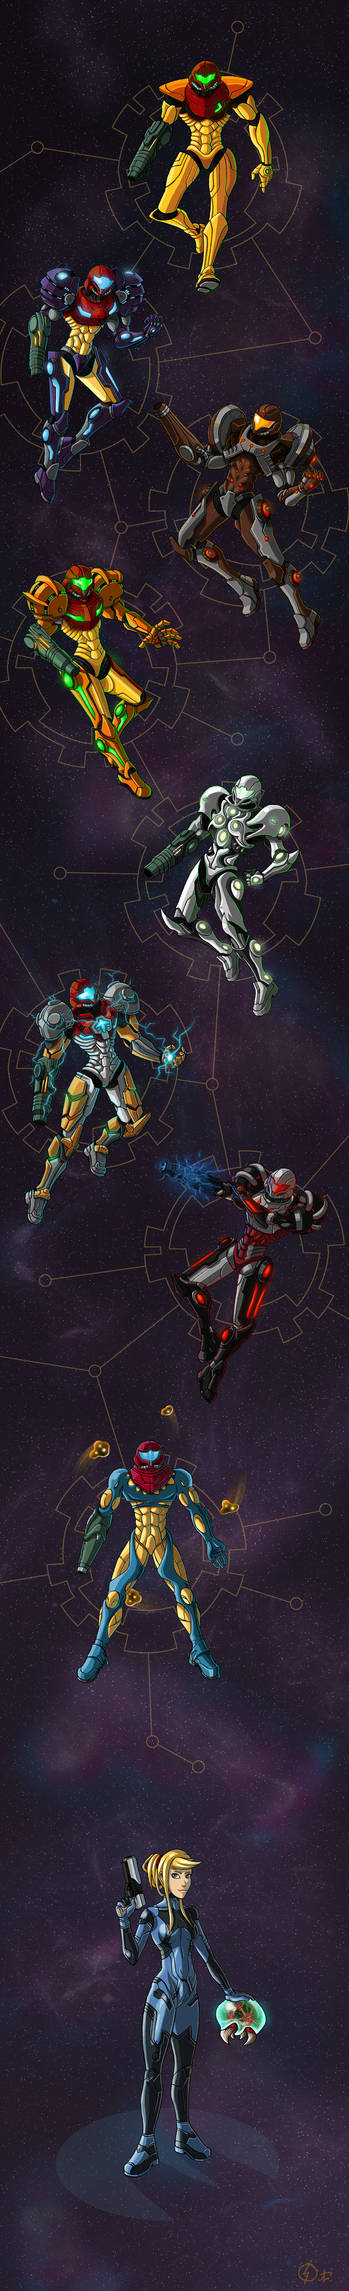 Metroid : Armored Heart